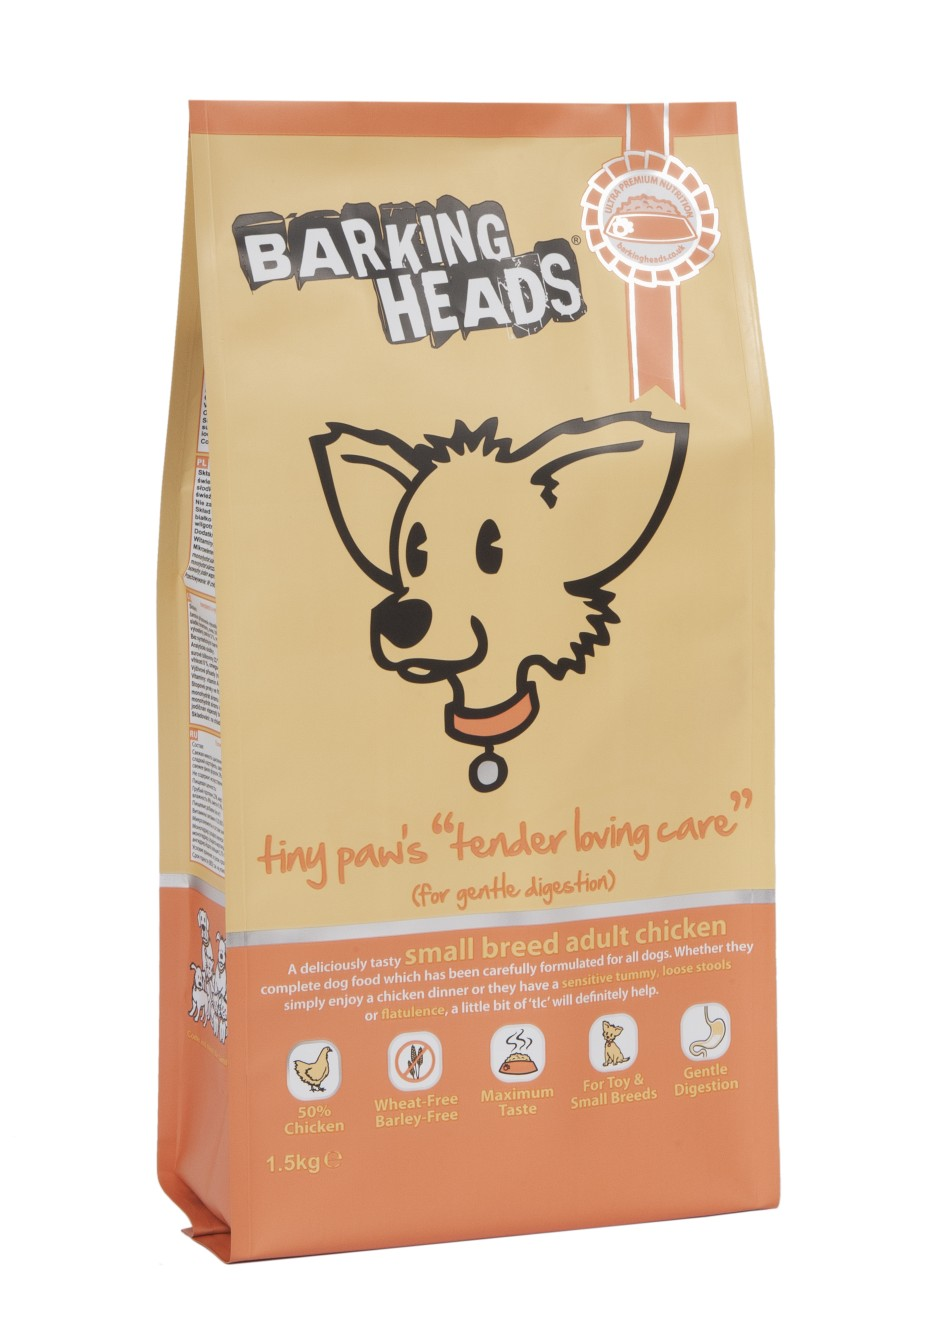 BARKING HEADS Tiny Paws Tender Loving Care 1.5kg